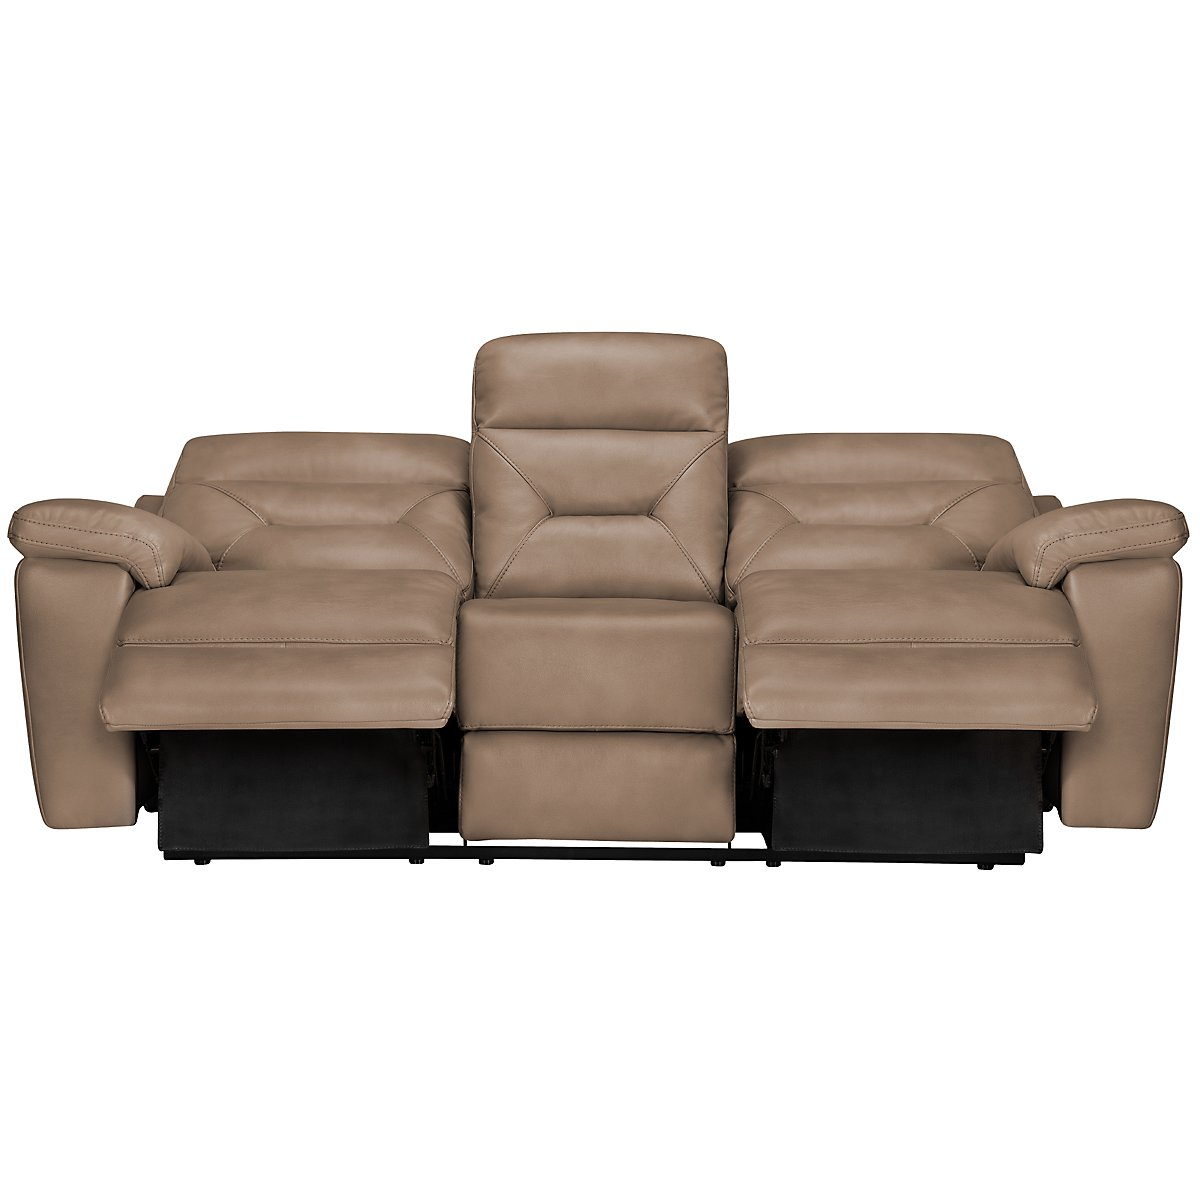 Phoenix dark beige microfiber power reclining sofa for Microsuede living room furniture